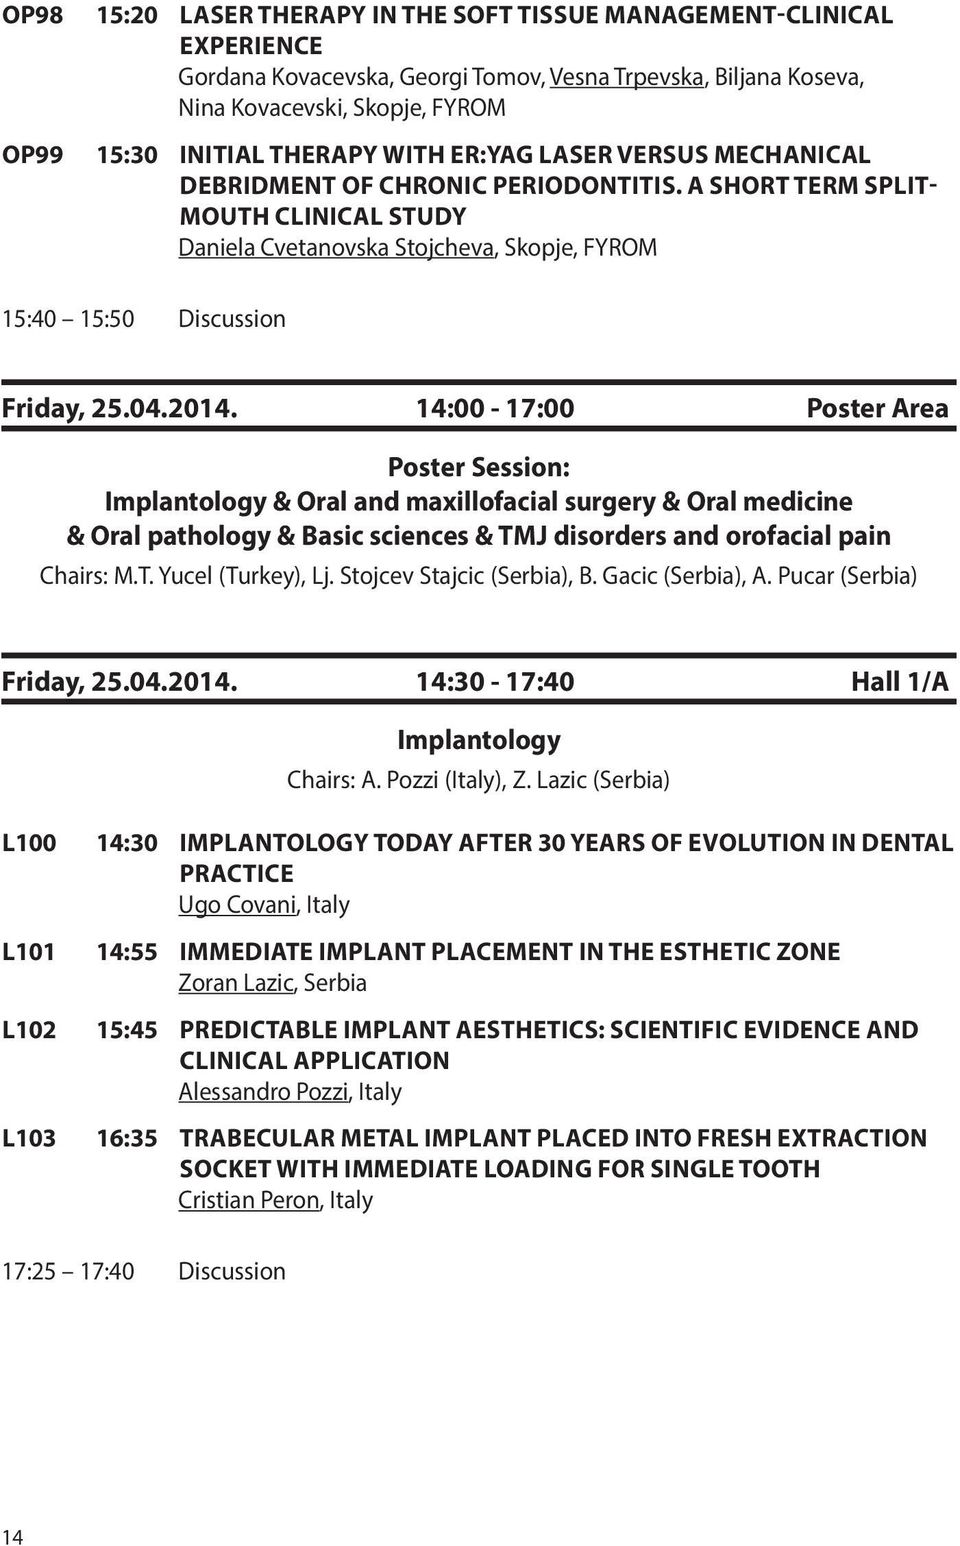 2014. 14:00-17:00 Poster Area Poster Session: Implantology & Oral and maxillofacial surgery & Oral medicine & Oral pathology & Basic sciences & TMJ disorders and orofacial pain Chairs: M.T. Yucel (Turkey), Lj.